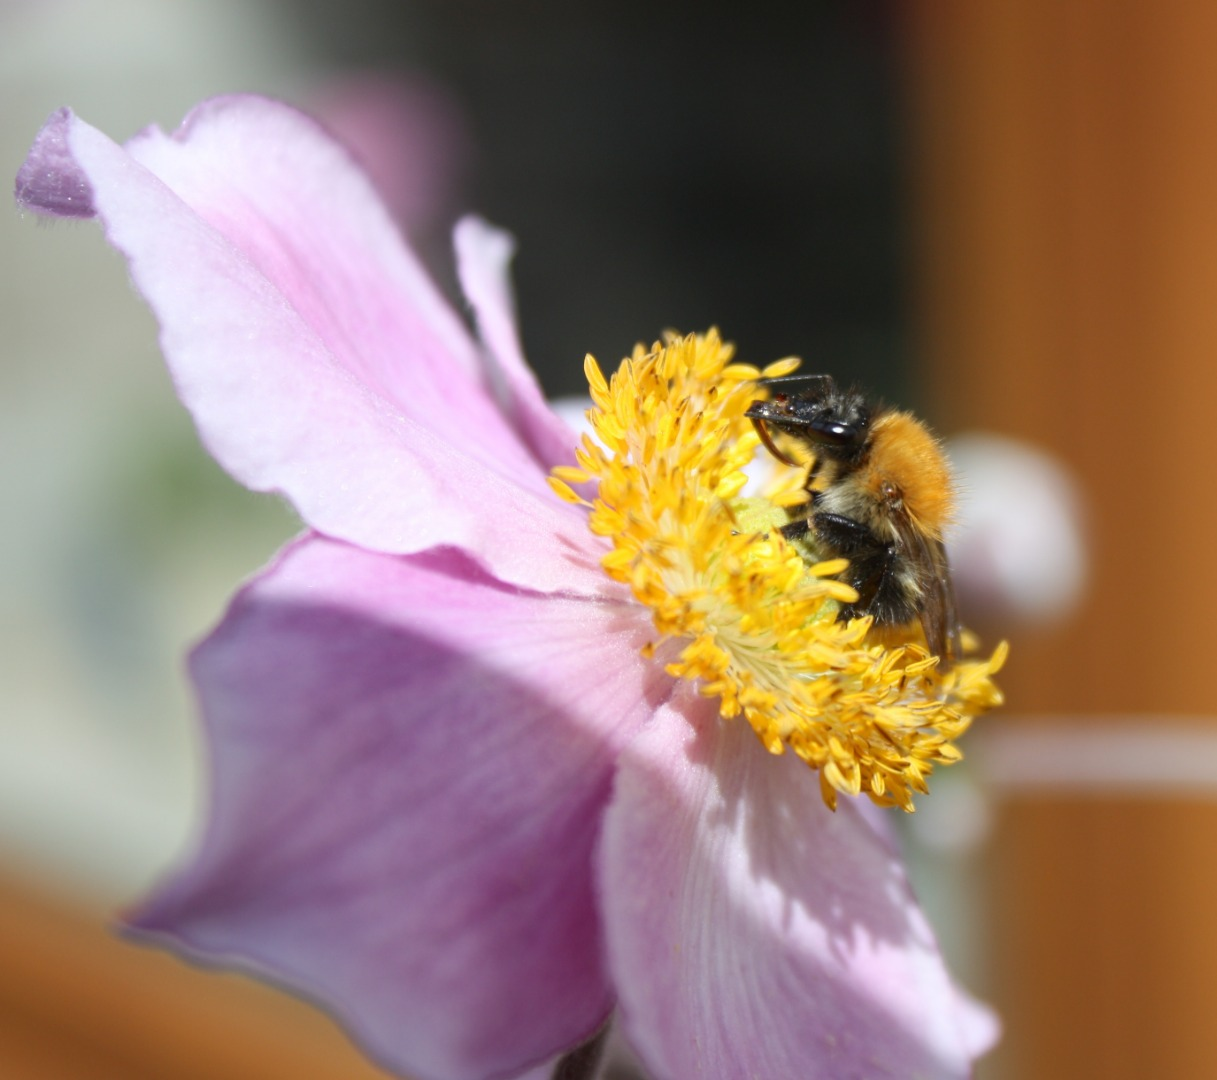 Bees are buzzing this spring